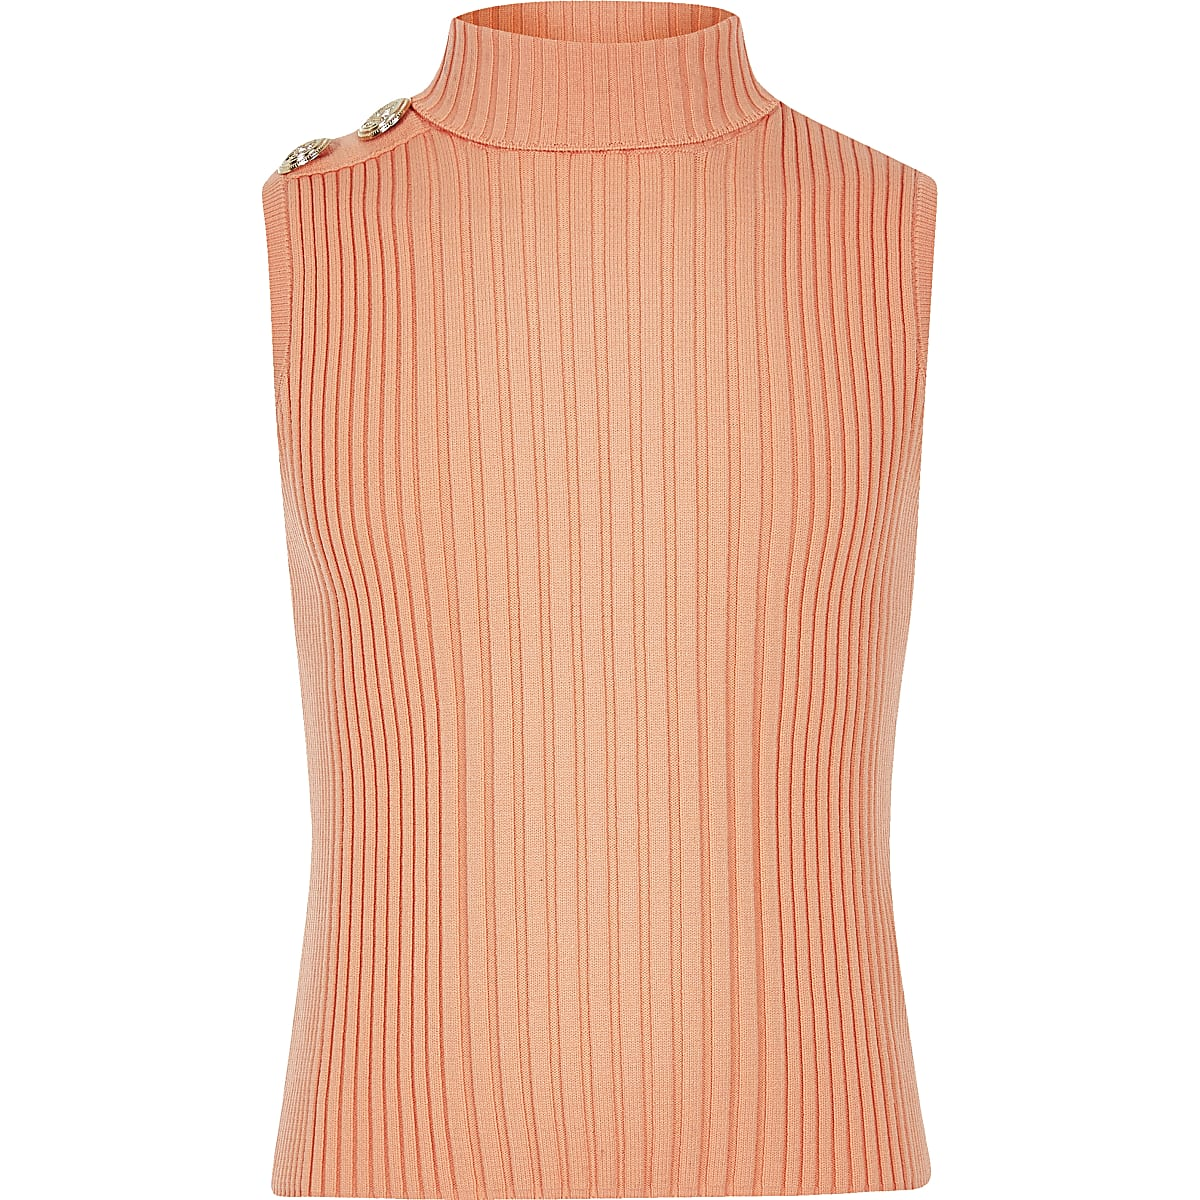 Girls orange turtle neck tank top